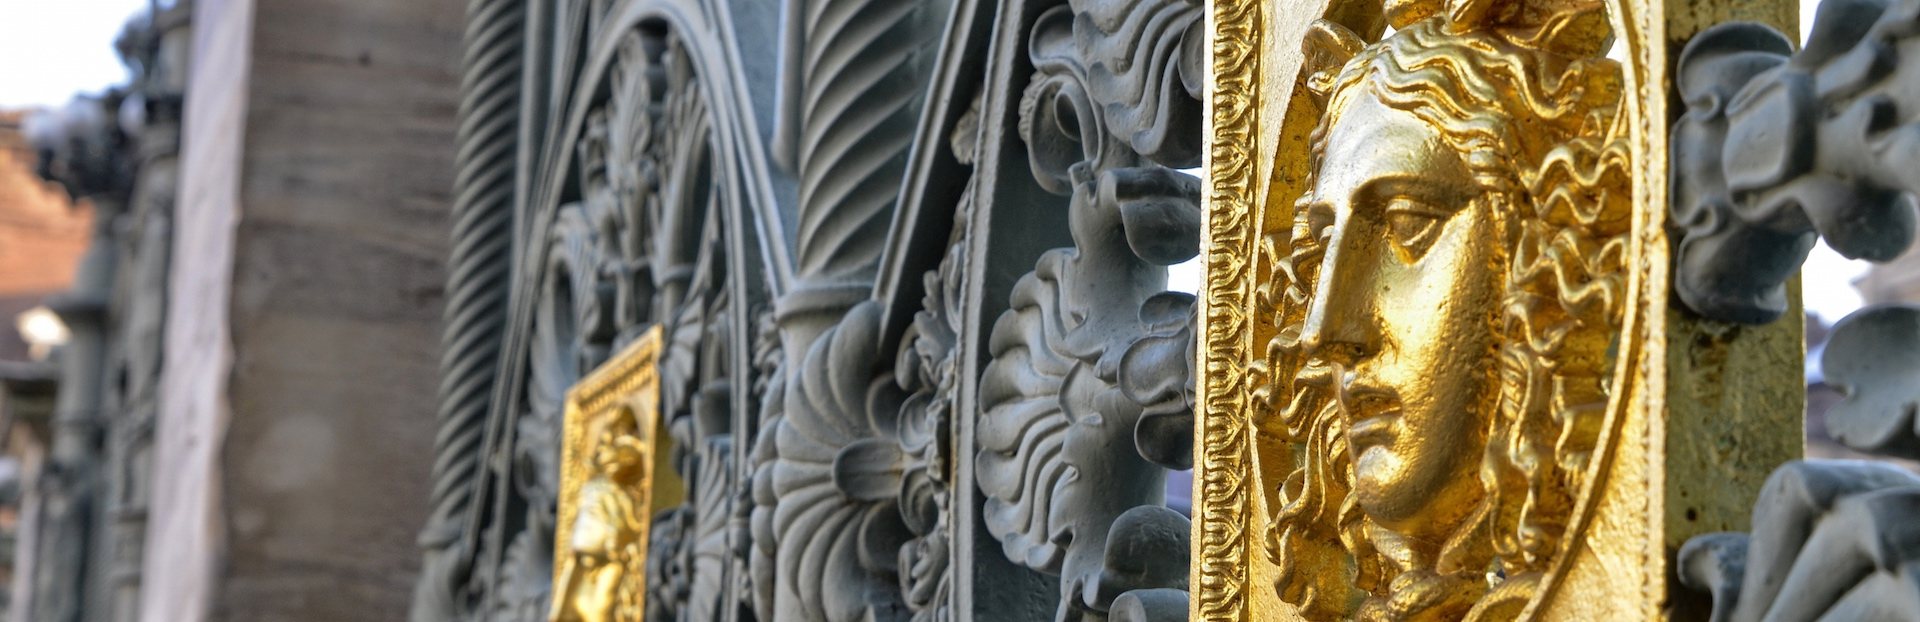 Turin audio tour: The beautiful Baroque palaces and churches on Turin's Piazza Castello